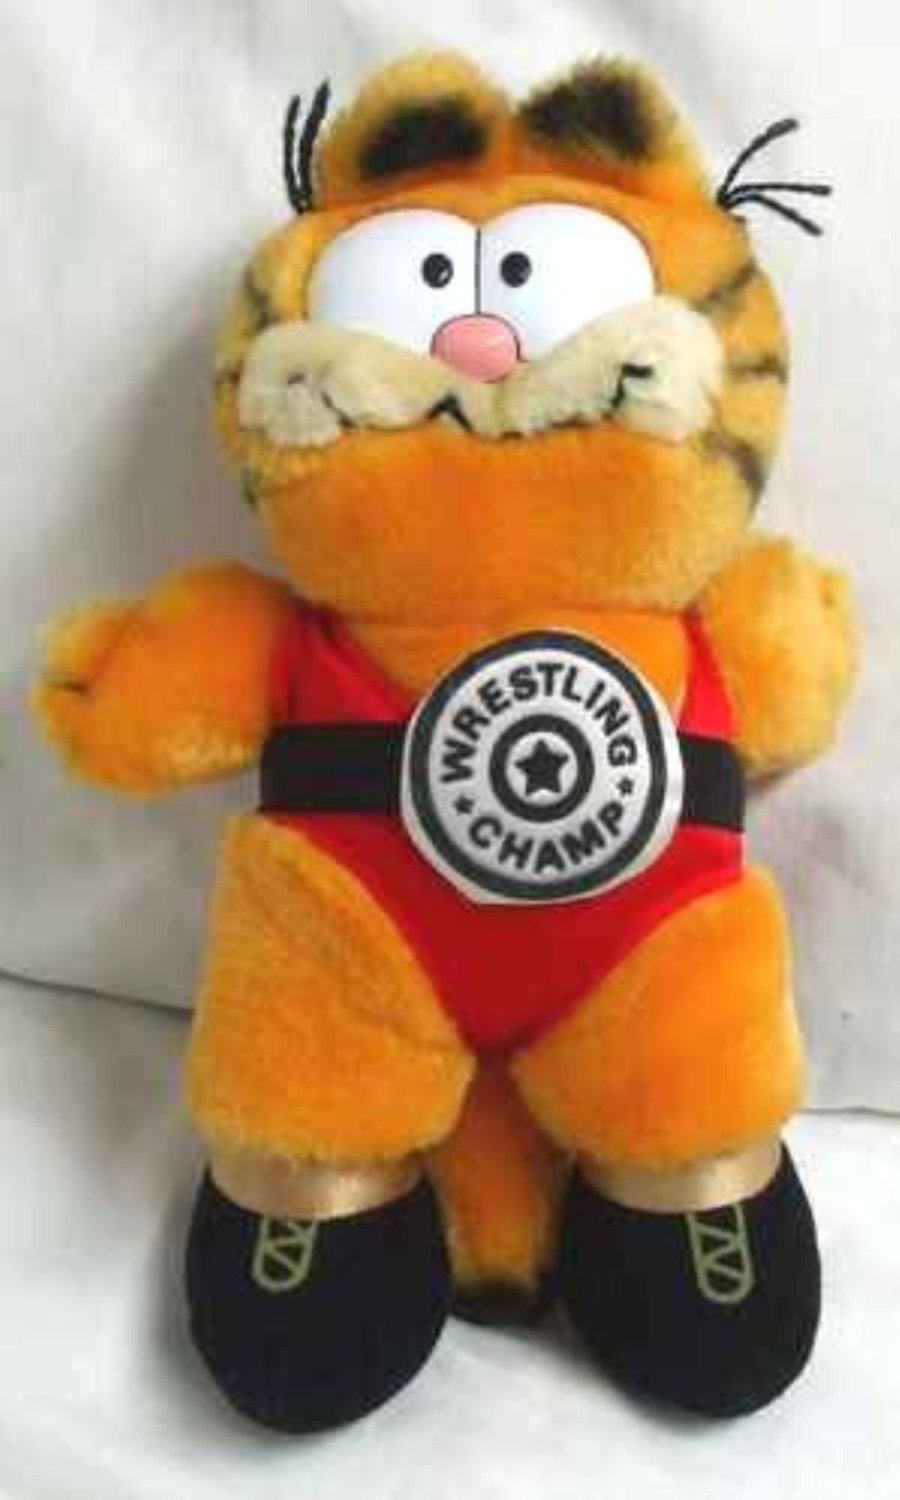 Garfield wrestler plush